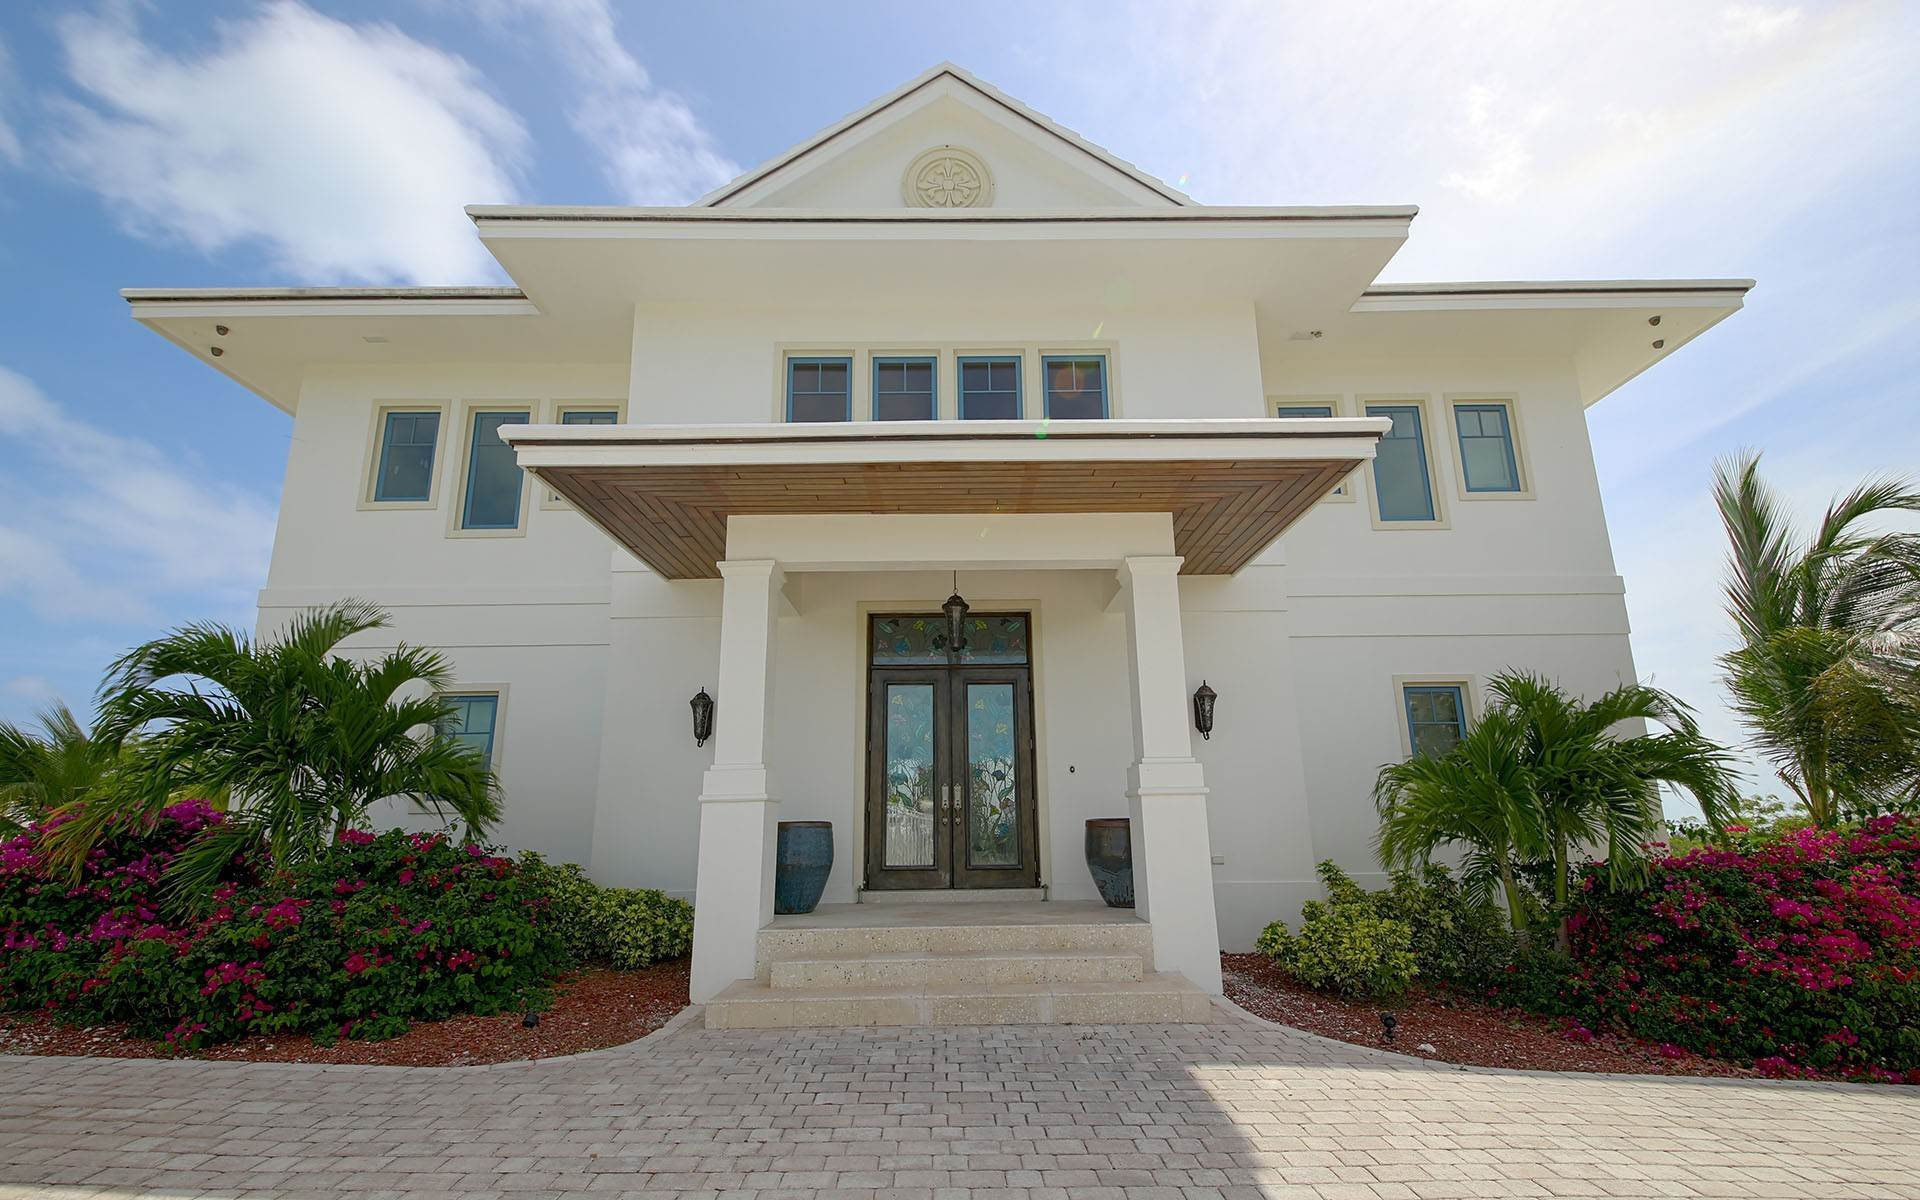 Single Family Home for Sale at White Heather - Estate Home with Expansive Ocean Views - MLS 30053 Exumas, Bahamas